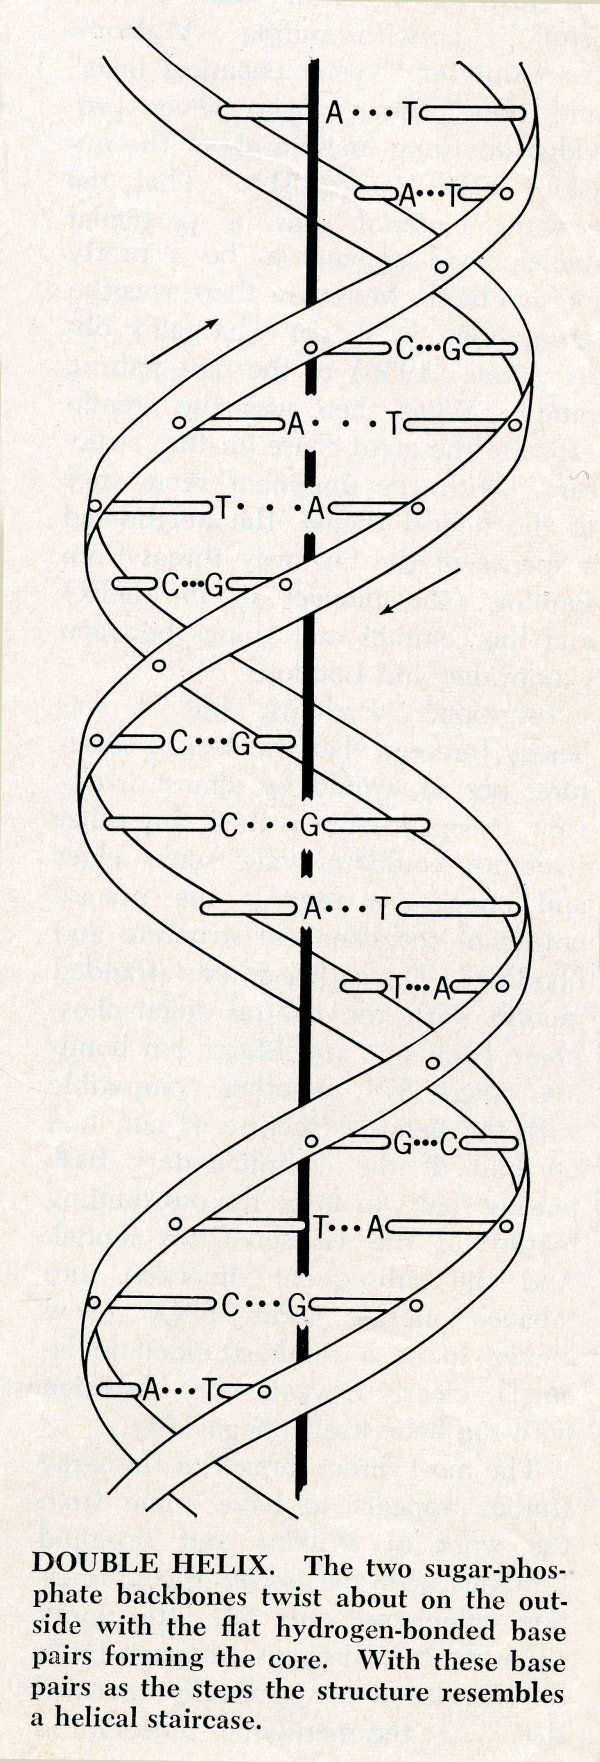 Here is a diagram of DNA which is much easier to understand than the model. It shows how the base pairs match up and the twisting helical structure.